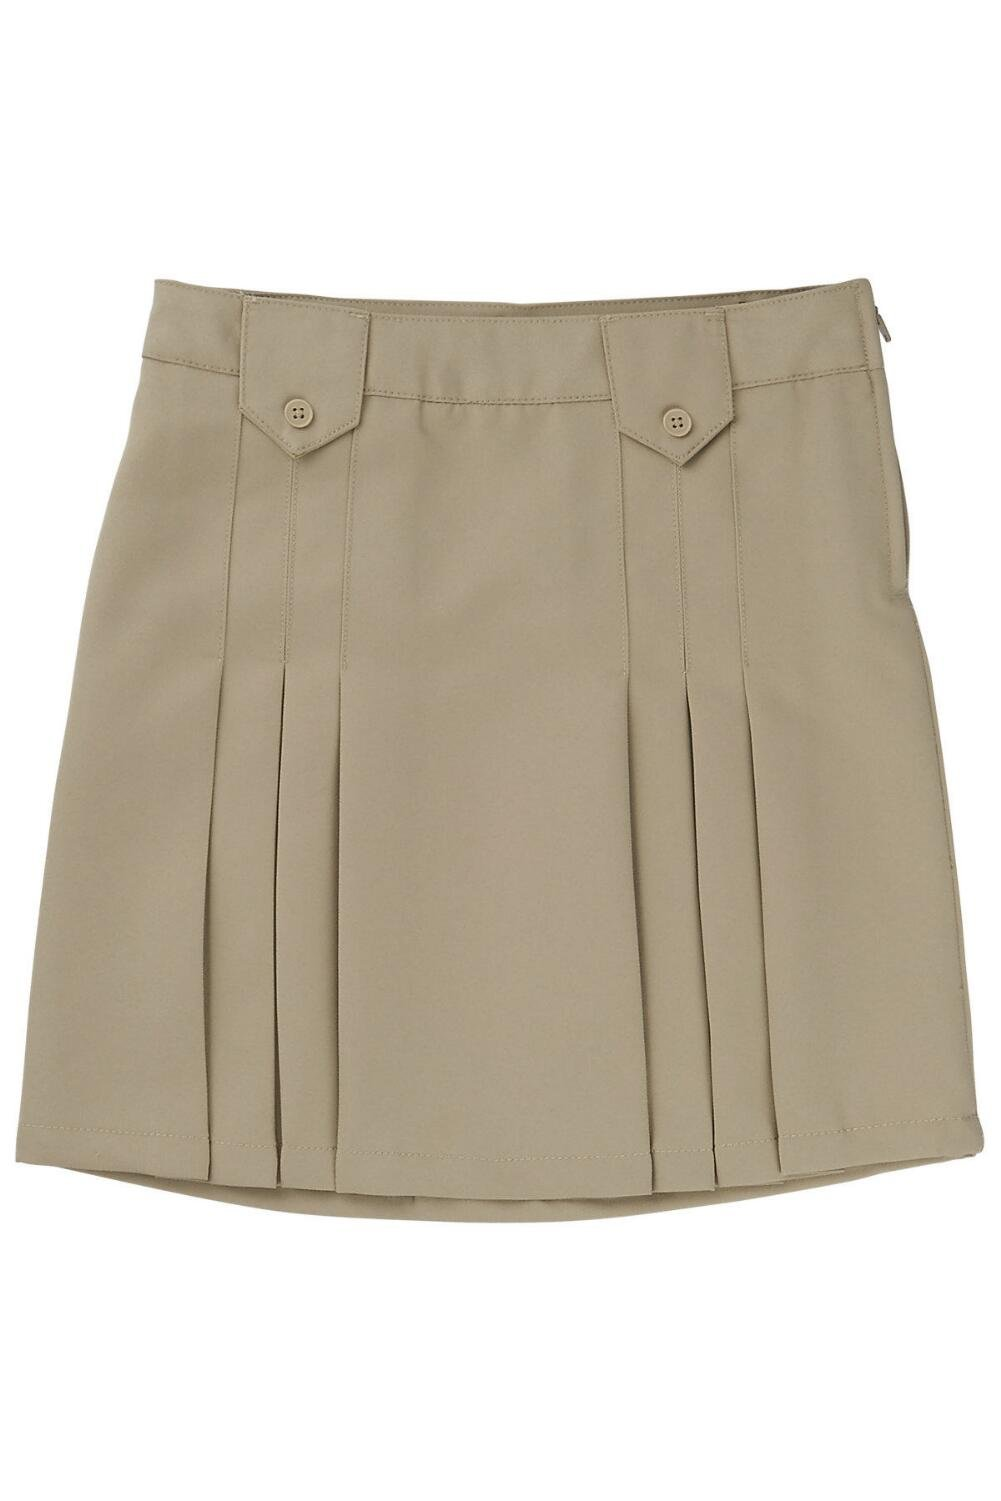 French Toast Big Girls' Front Pleated Skirt with Tabs, Khaki, 14